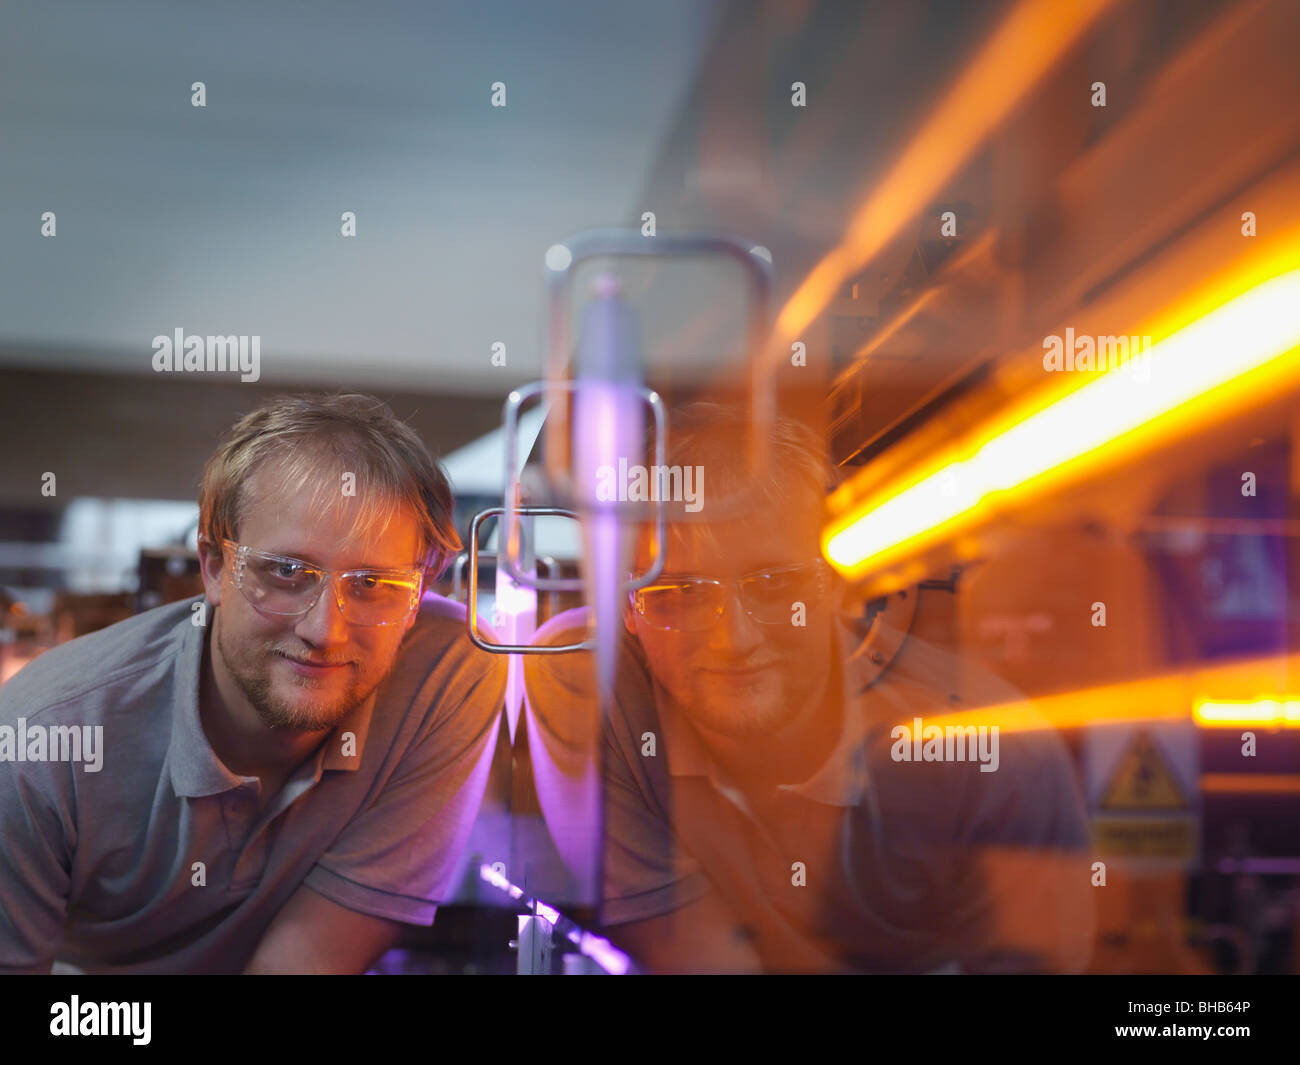 Fusion Reactor Scientist With Laser - Stock Image